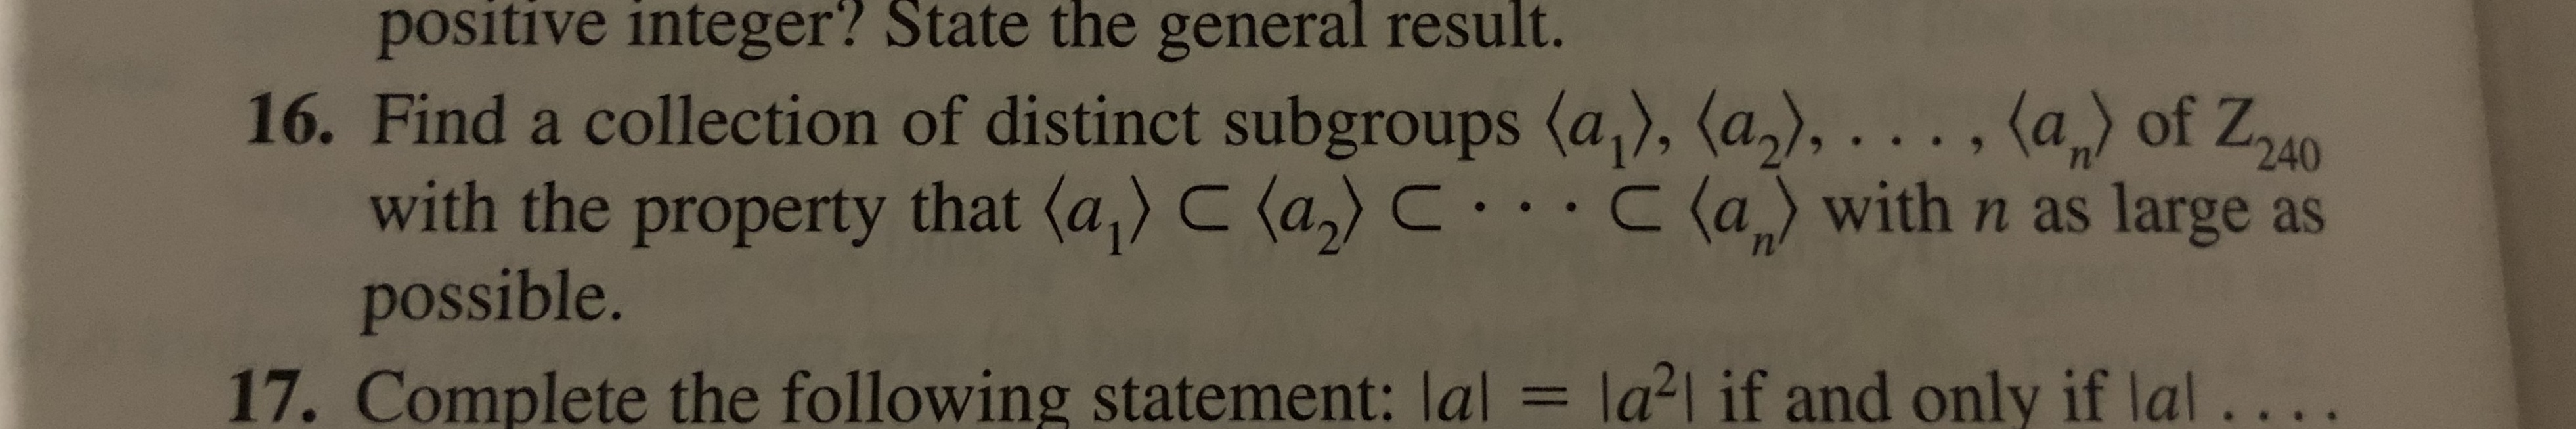 positive integer? State the general result. 16. Find a collection of distinct subgroups (a), (a2),..., (a of Z40 with the property that (a) C (a)C..C (a with n as large as possible. = la2l if and only if lal.. 17. Complete the following statement: lal